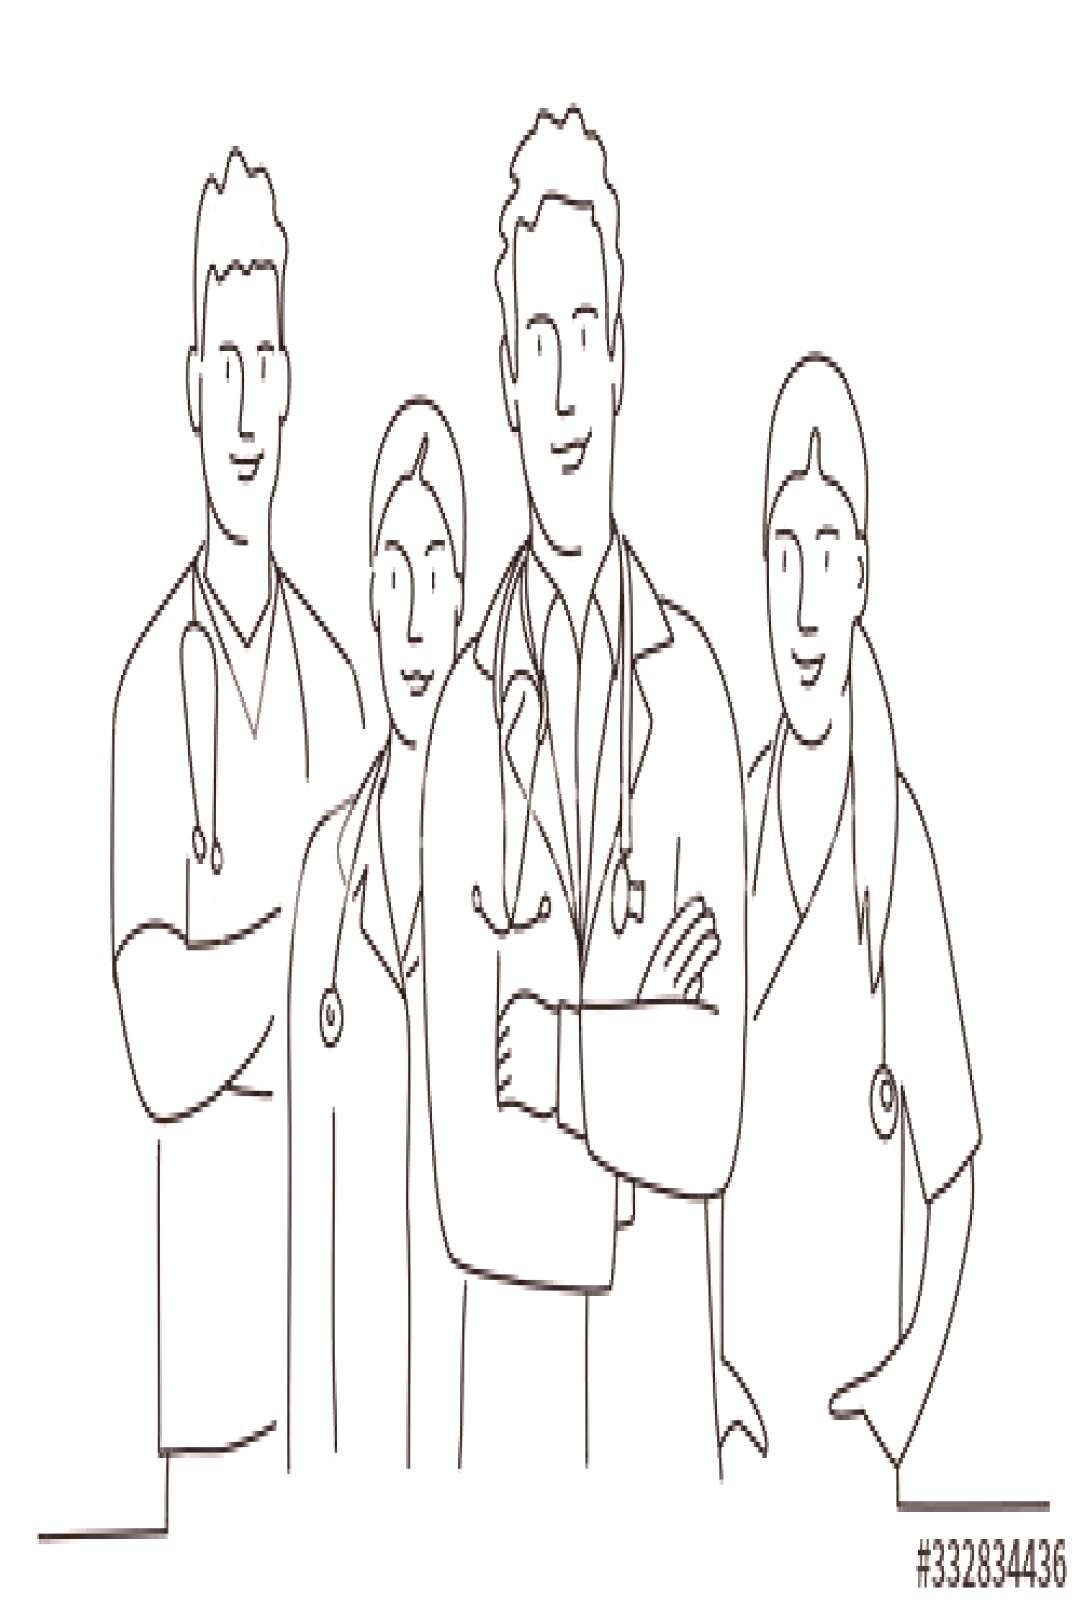 Group of doctors with arms crossed. Concept teamwork in hospital. Line drawing vector illustration.